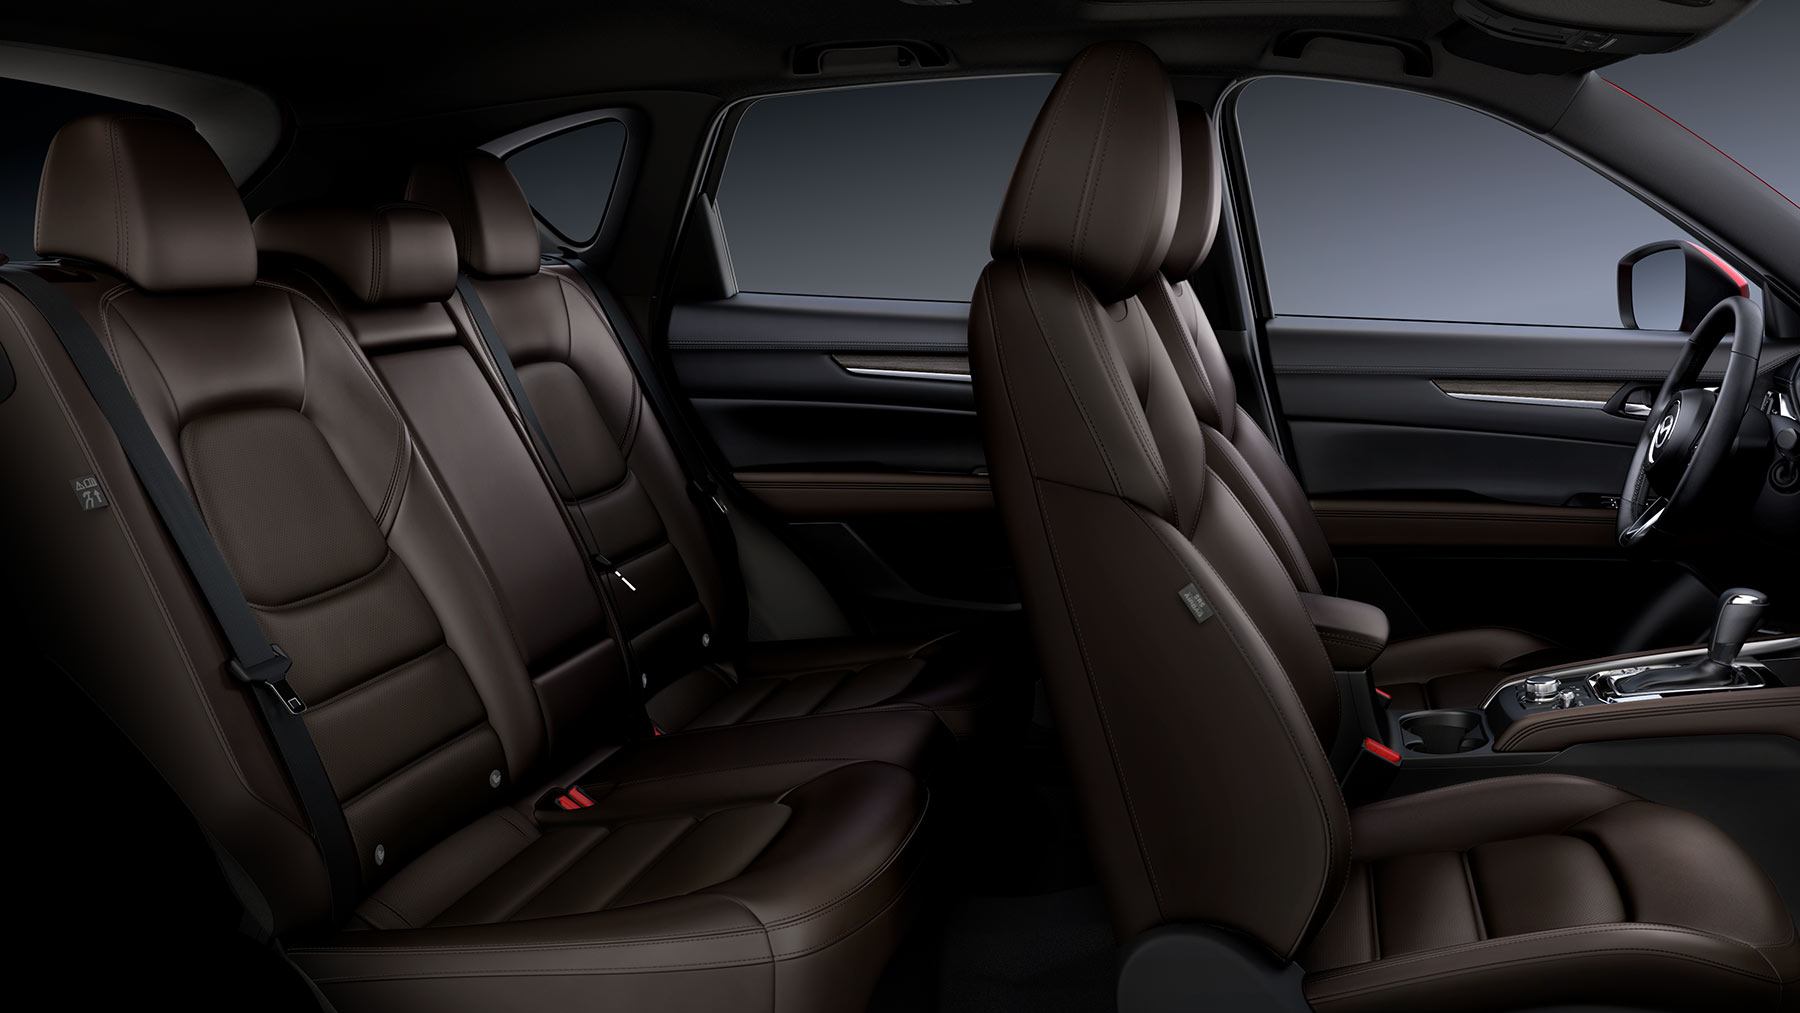 The Secure Cabin of the Mazda CX-5